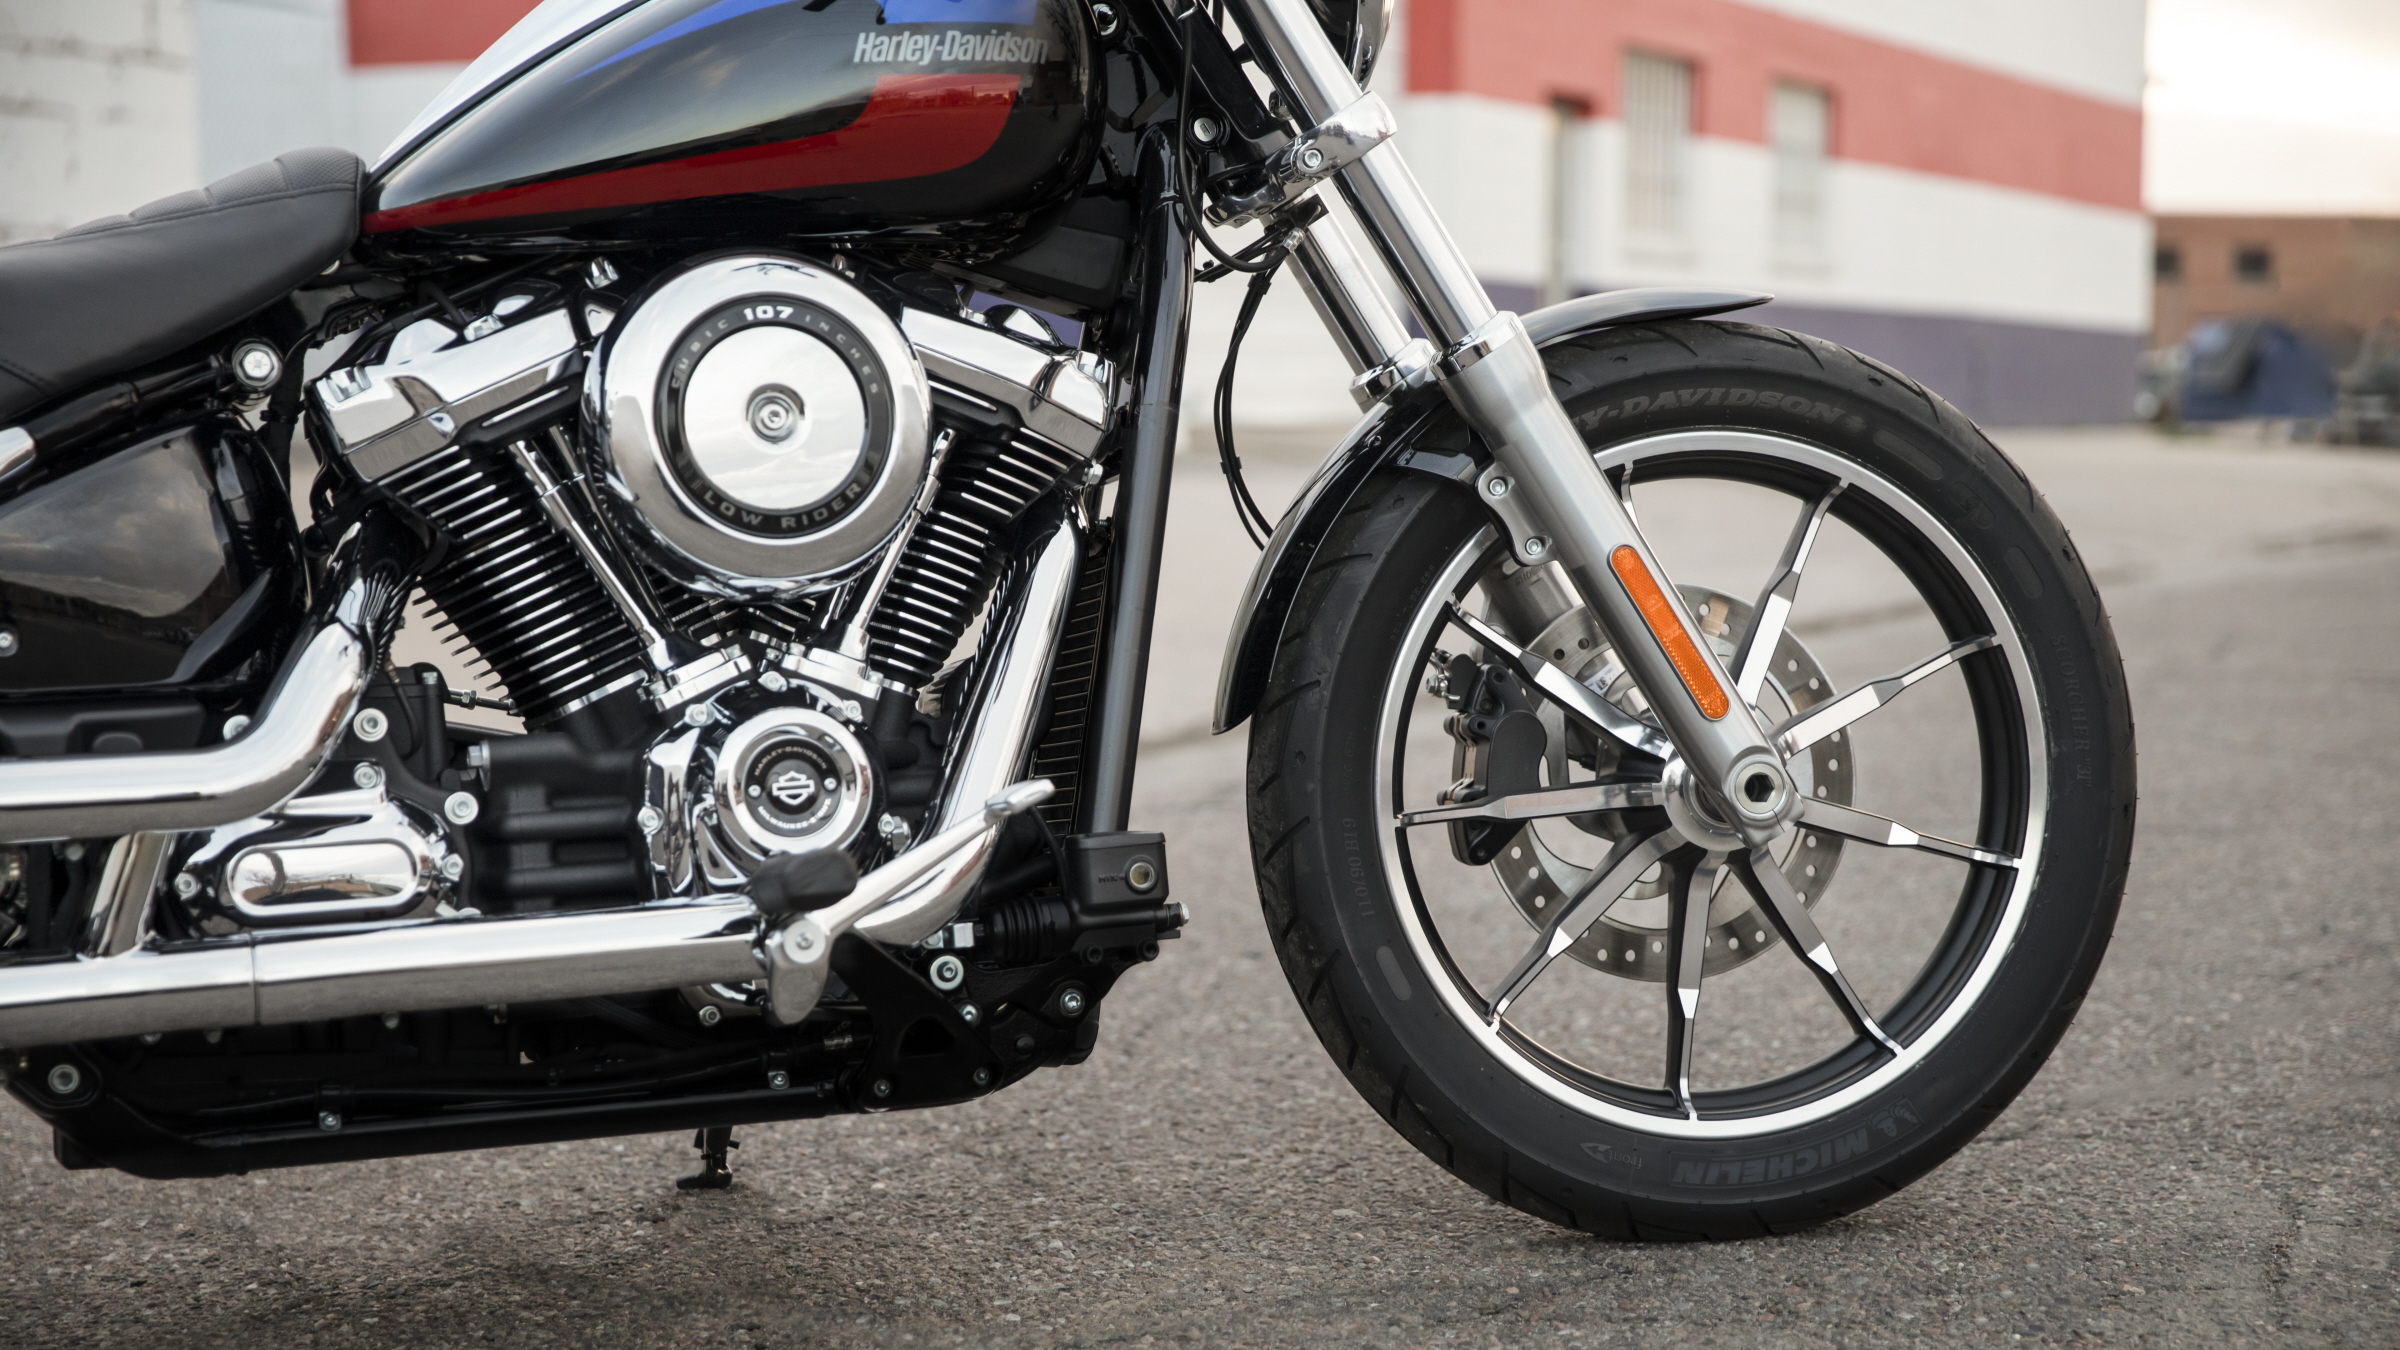 2018 - 2019 Harley-Davidson Low Rider | Top Speed